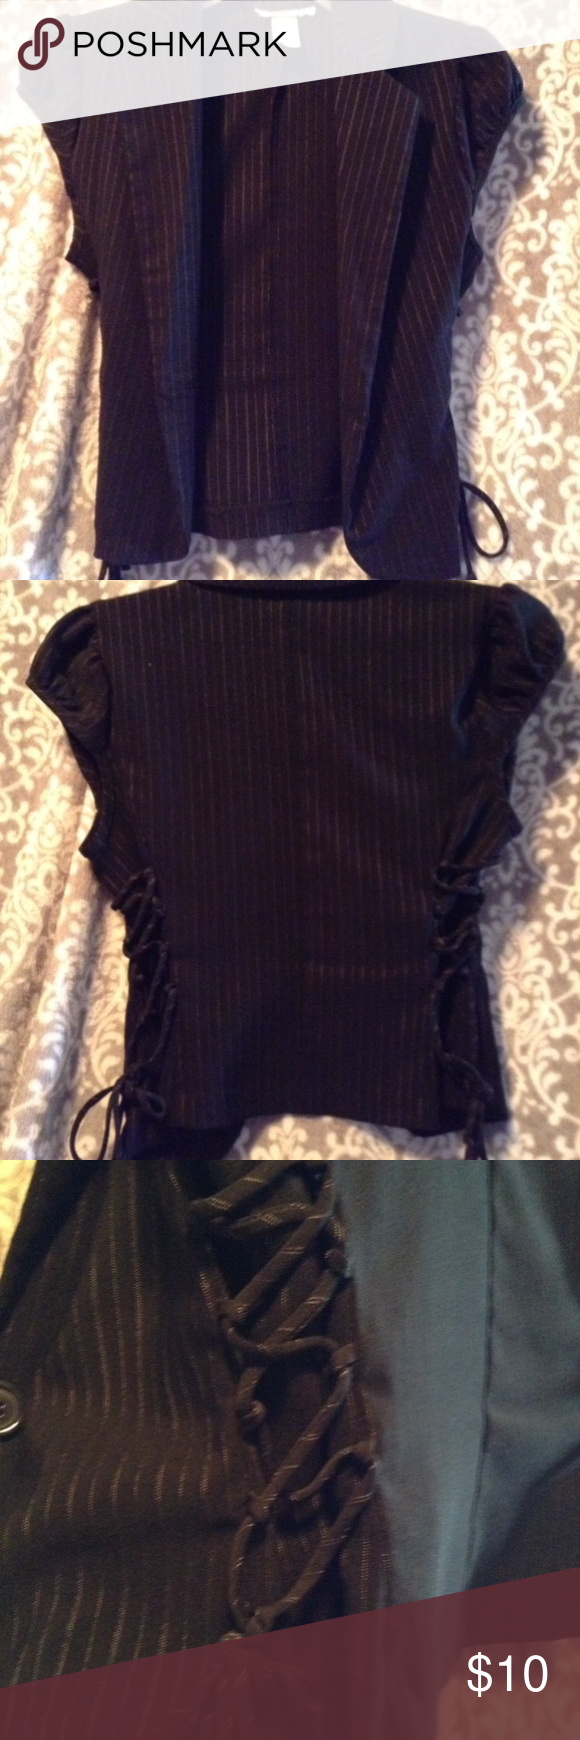 Charlotte Russe blouse Charlotte Russe size medium dressy business attire. Short sleeve, black, string design. Great condition. Tops